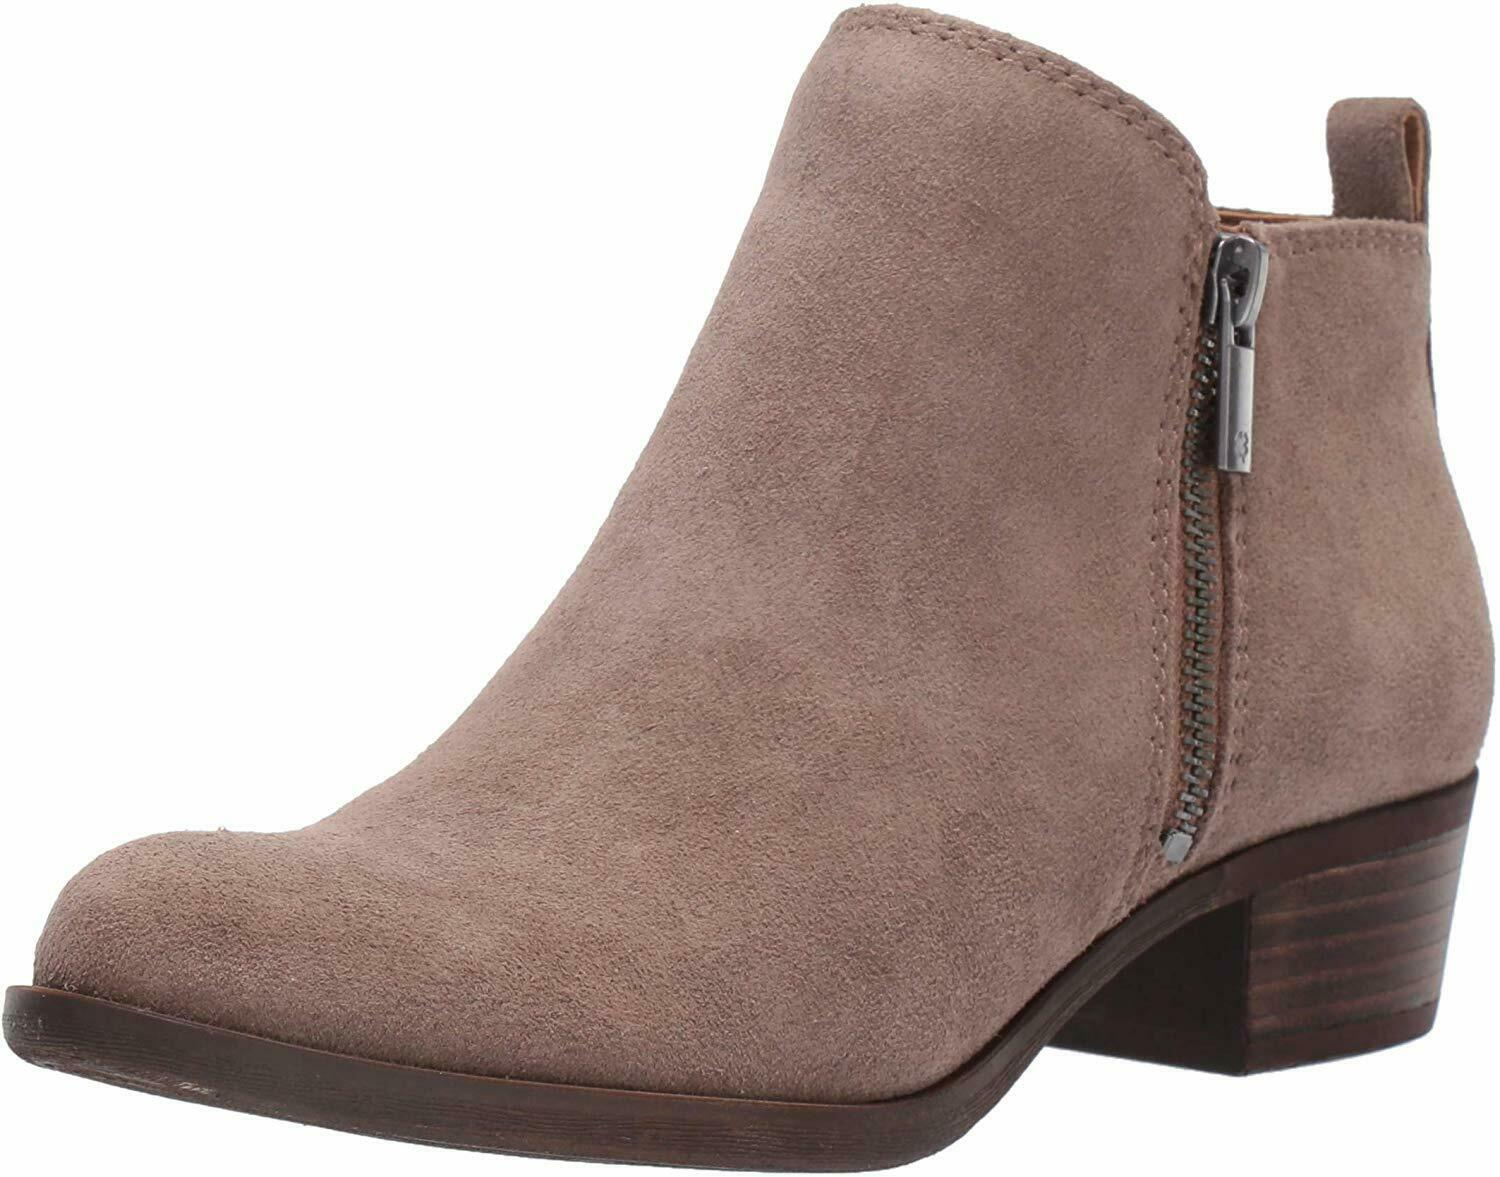 lucky brand ankle bootie amazon